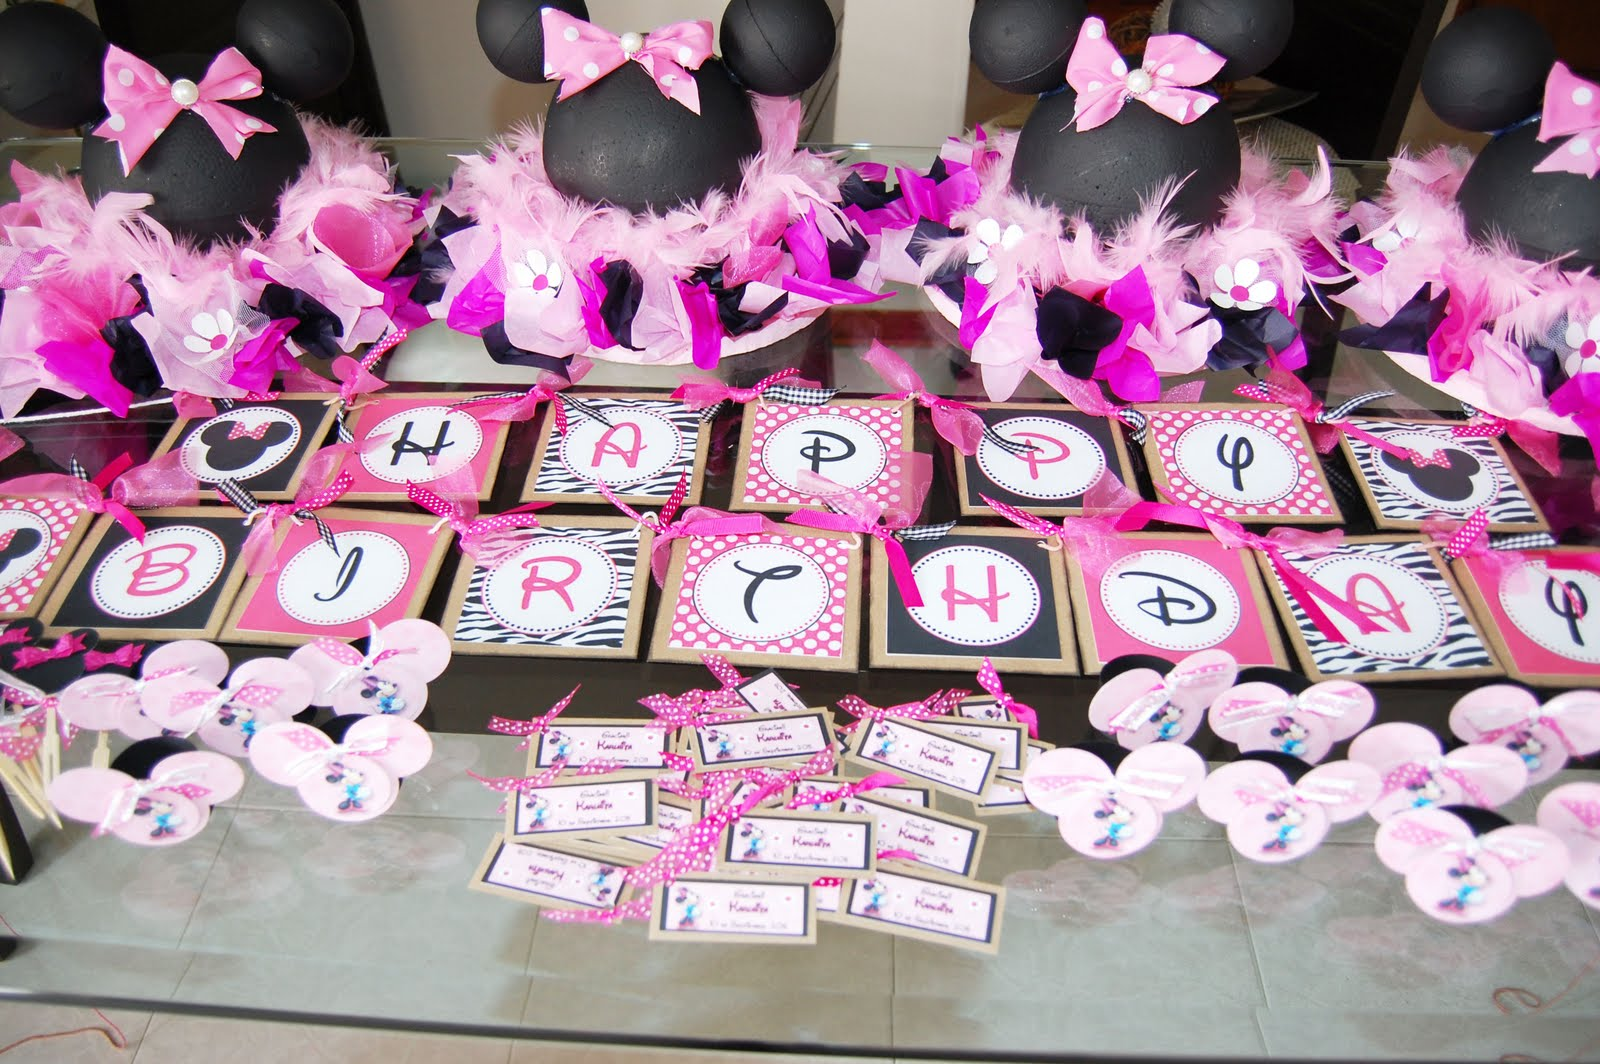 Pin decoracion minnie mouse fiestaideas images hawaii for Decoracion 2 0